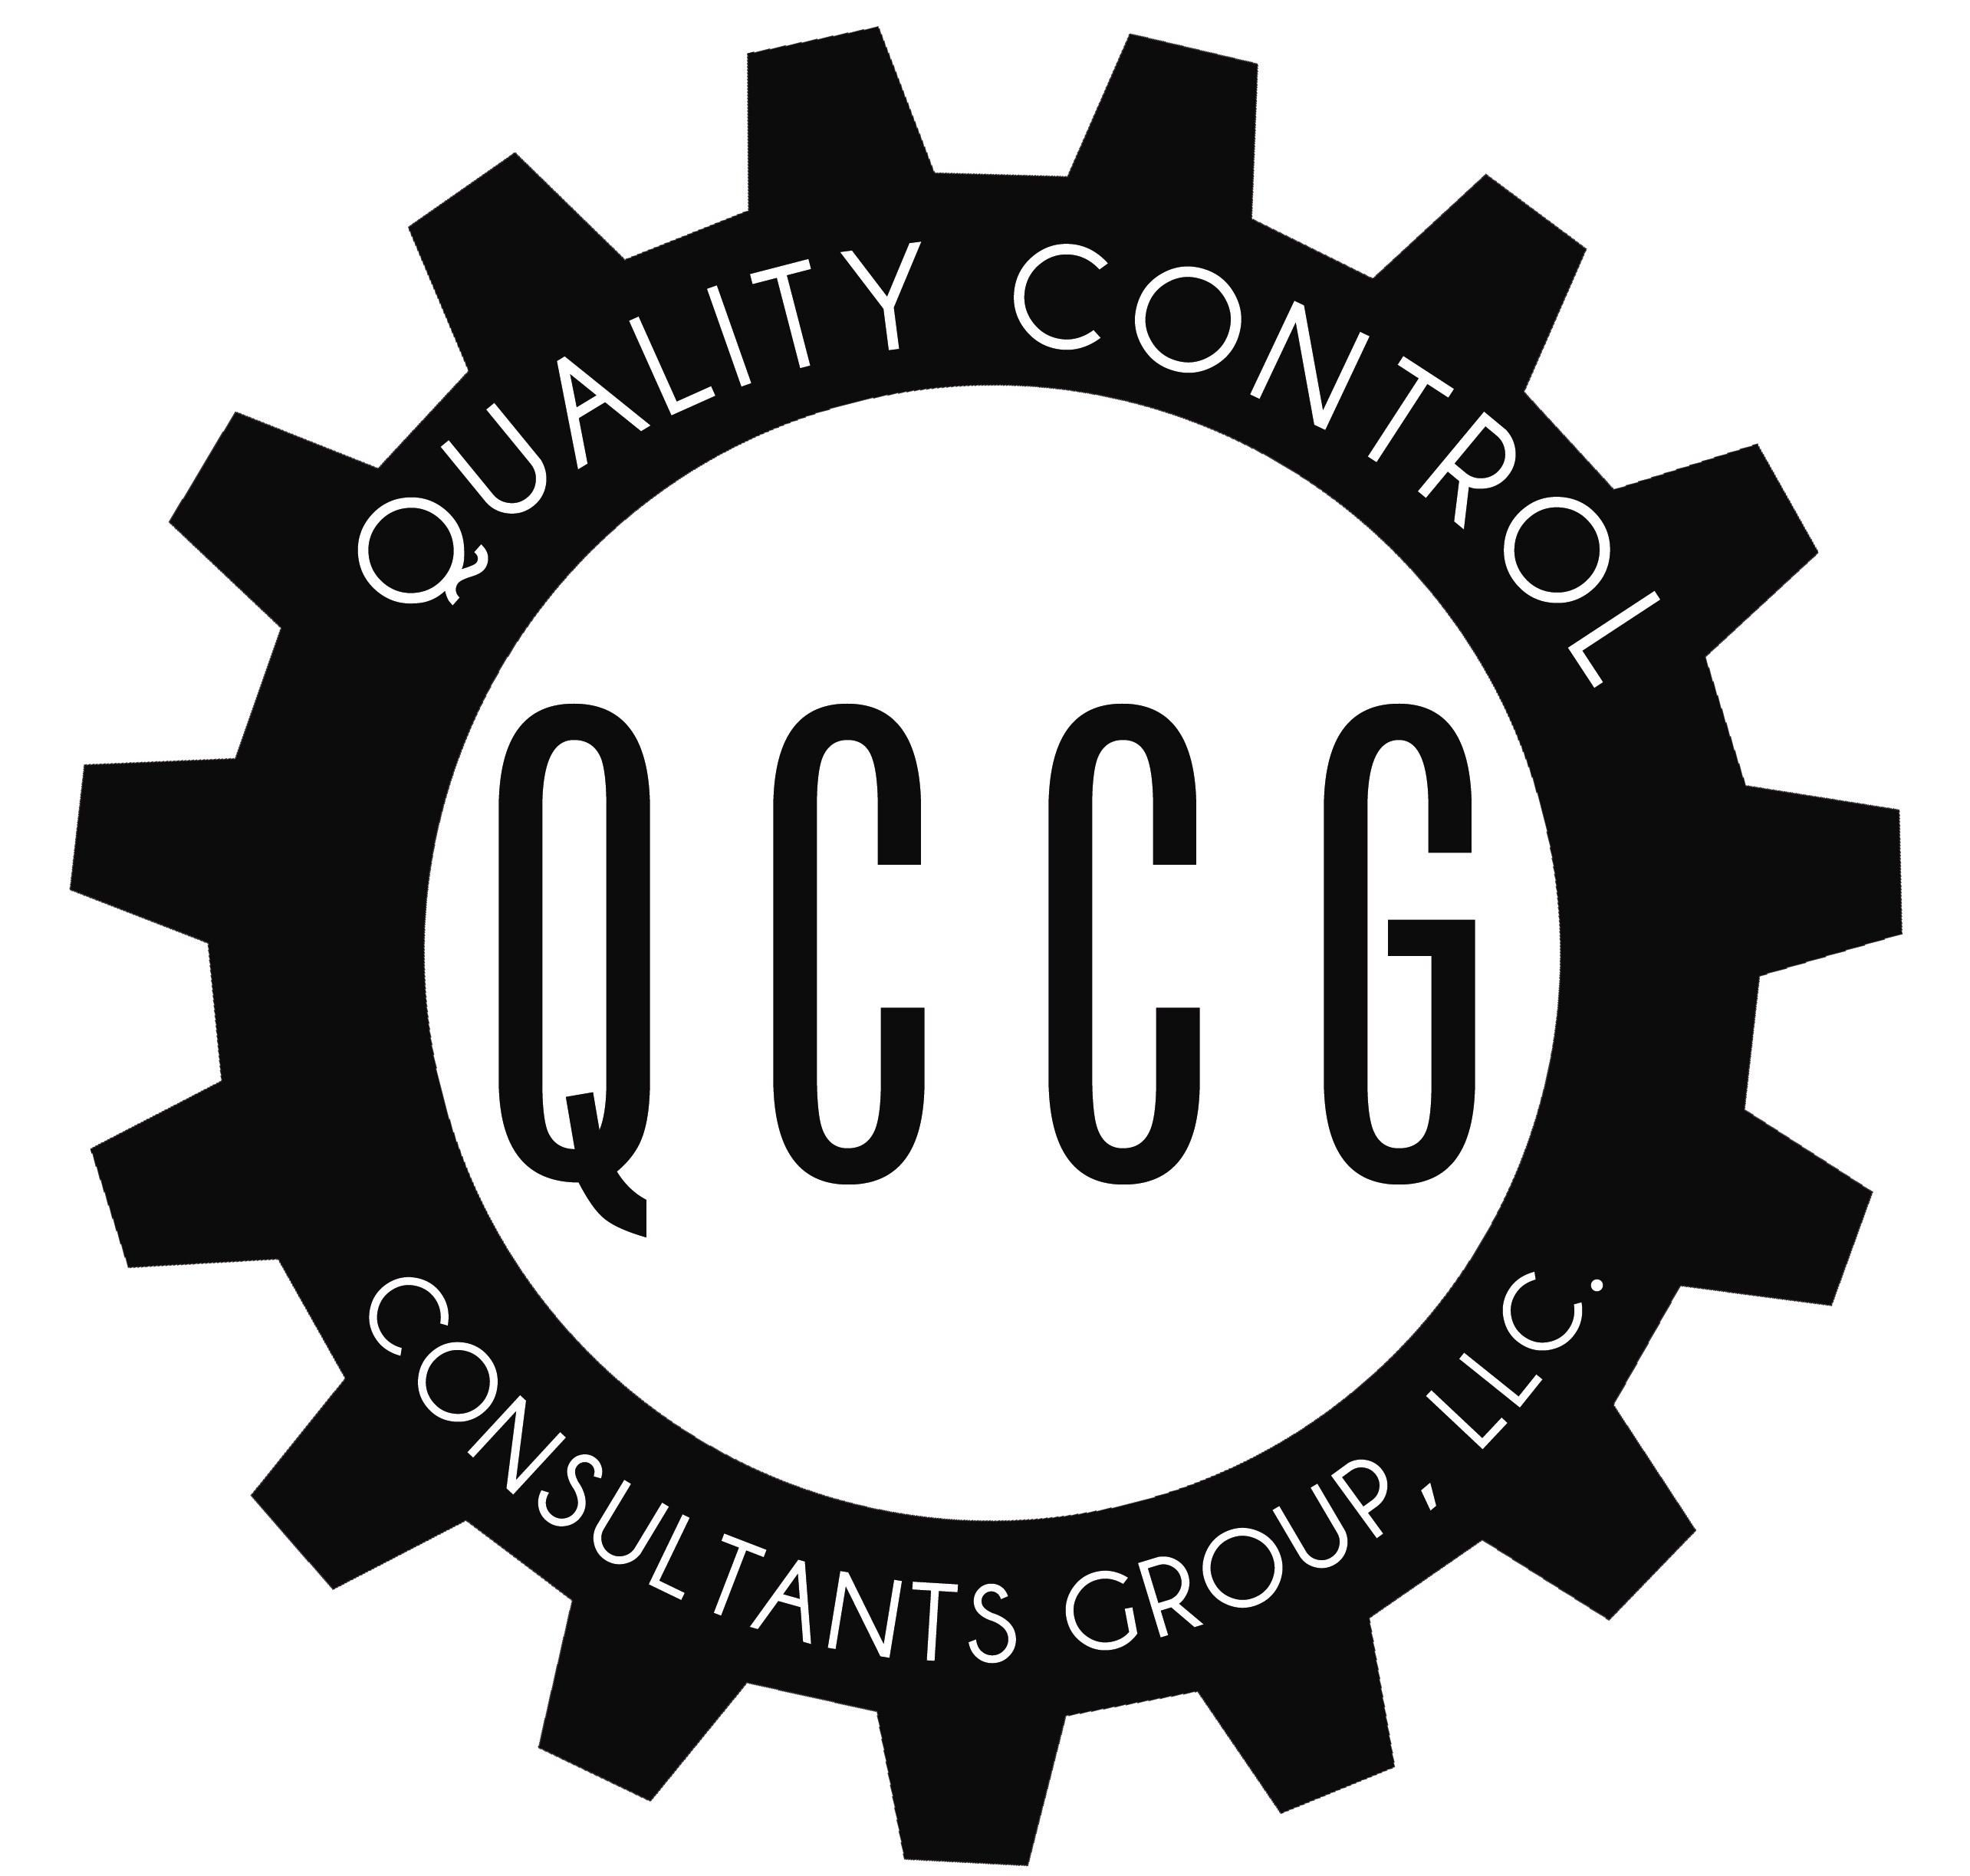 Quality Control Consultants Group, LLC